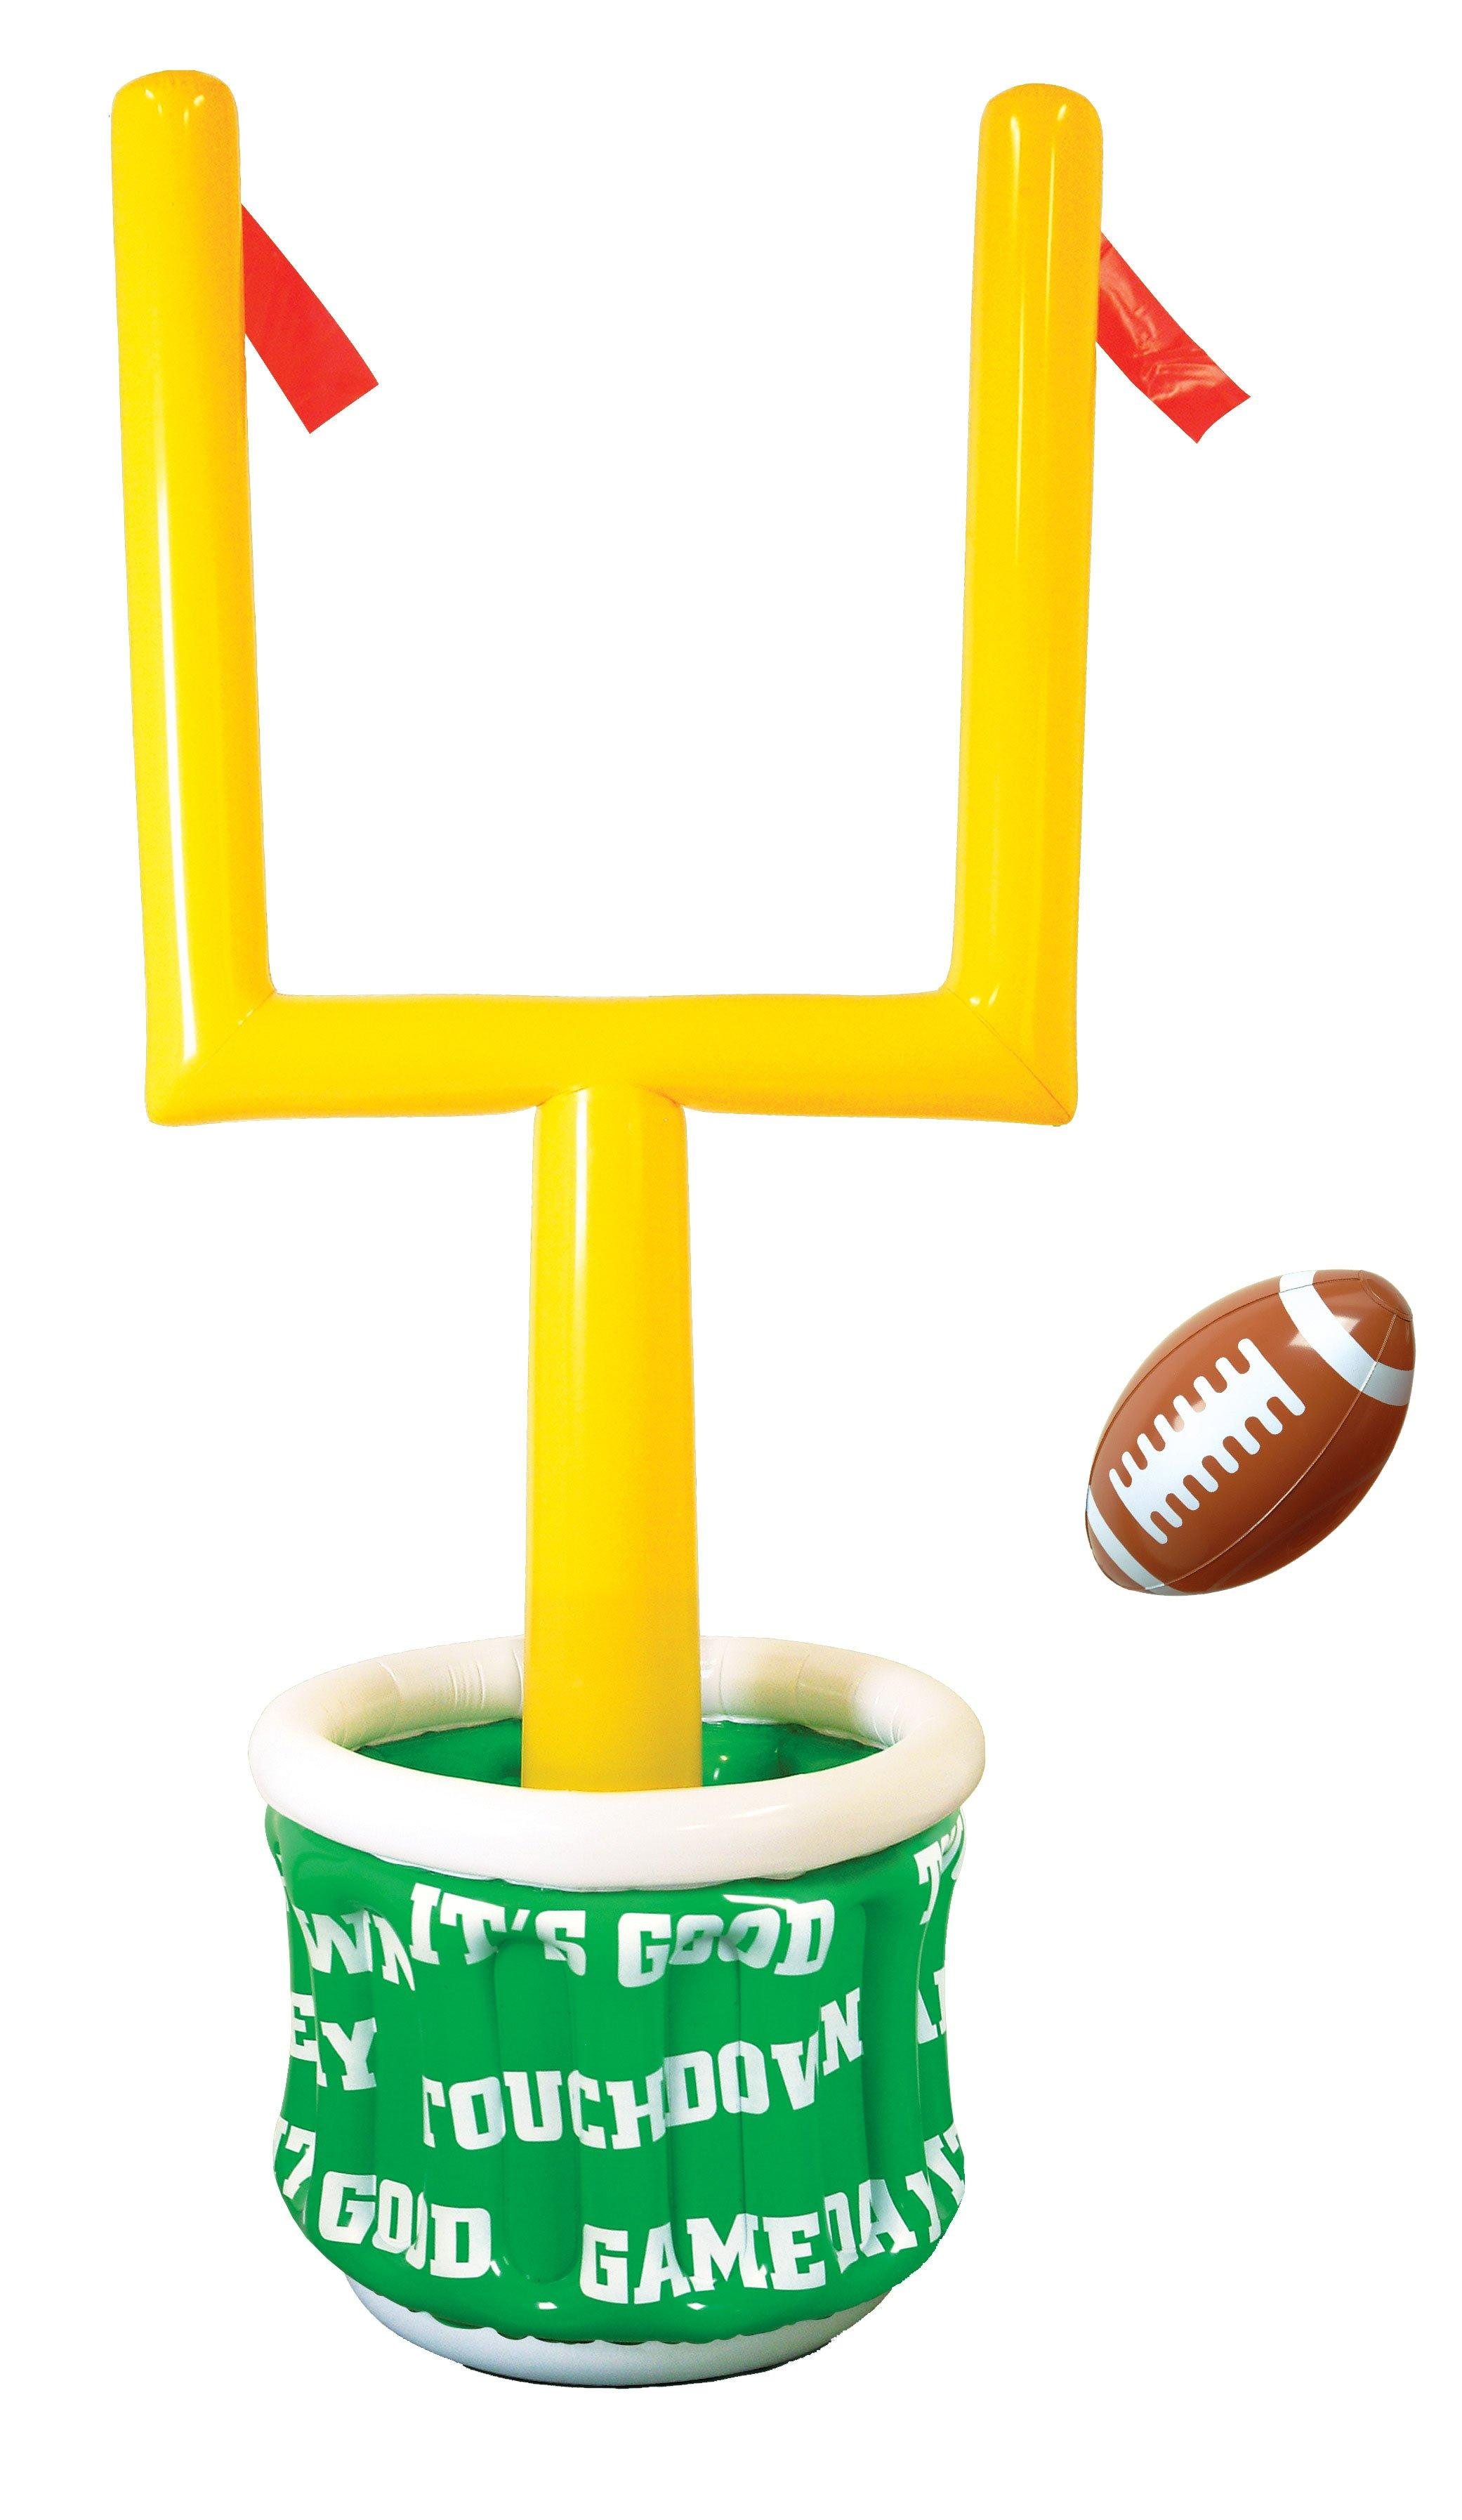 Touchdown field goal clipart picture royalty free download Inflatable Goal Post Cooler With Football clipart free image picture royalty free download